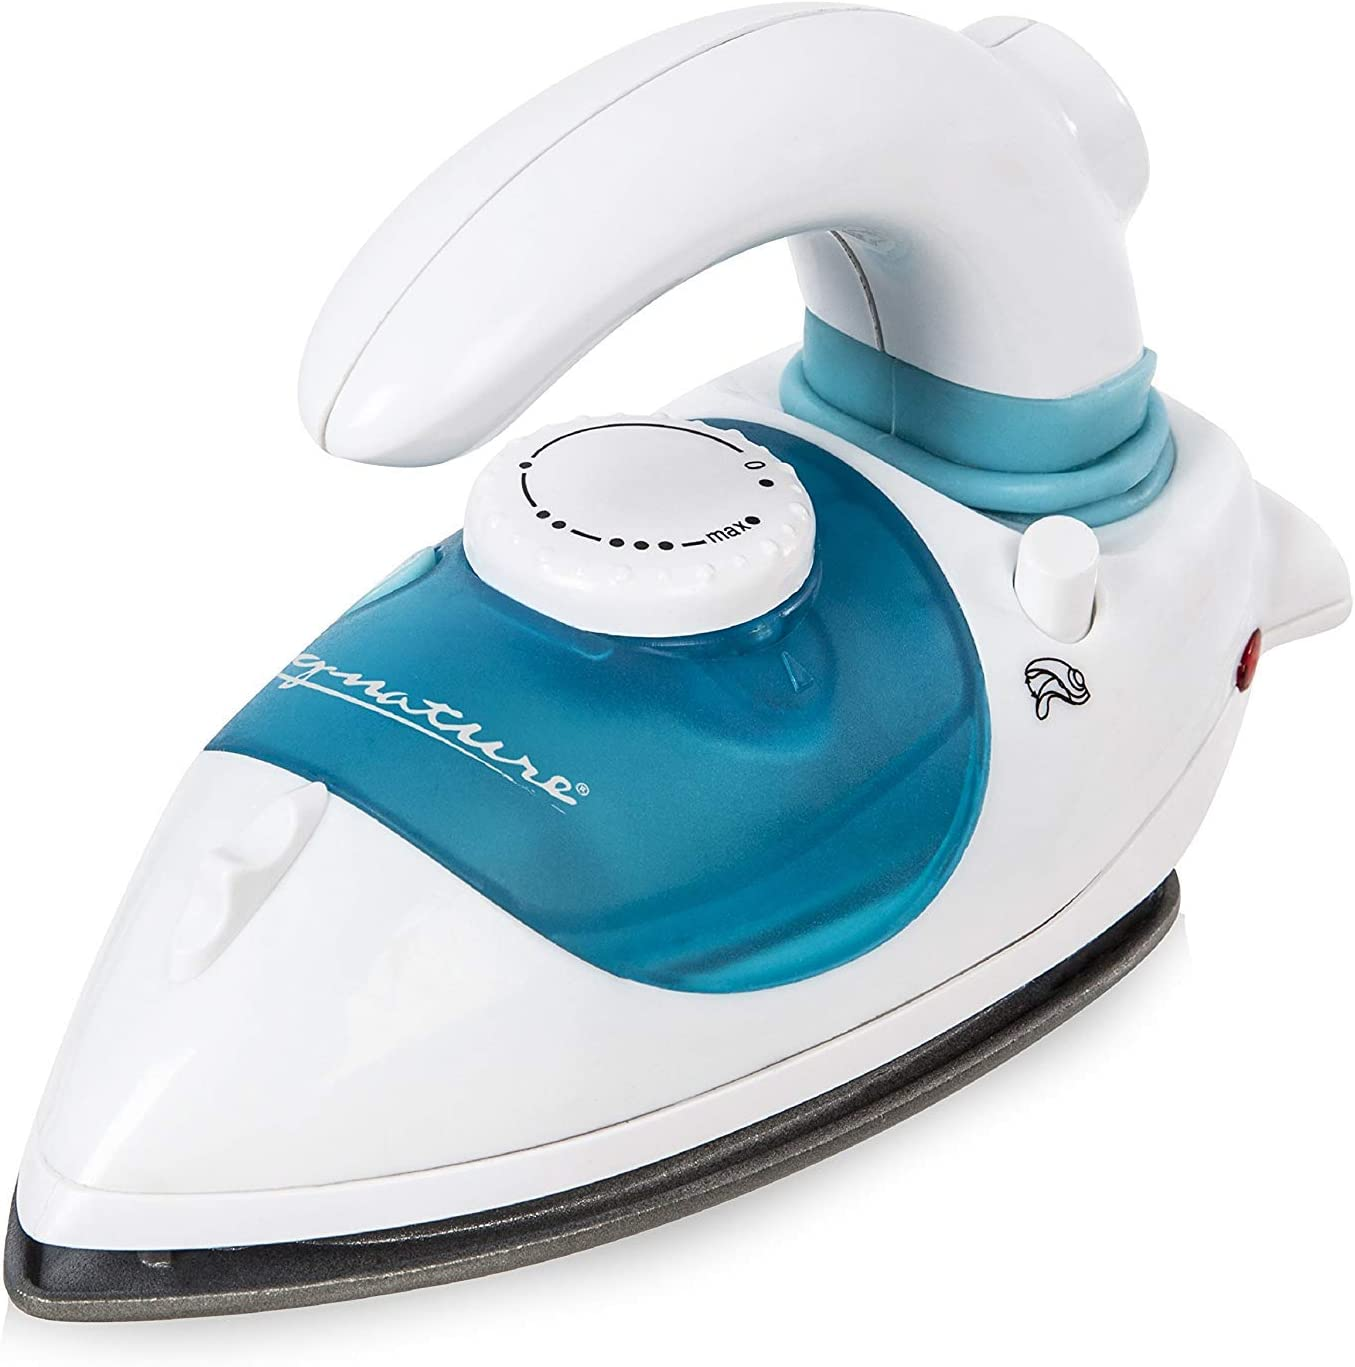 Best Steam Irons for Traveling